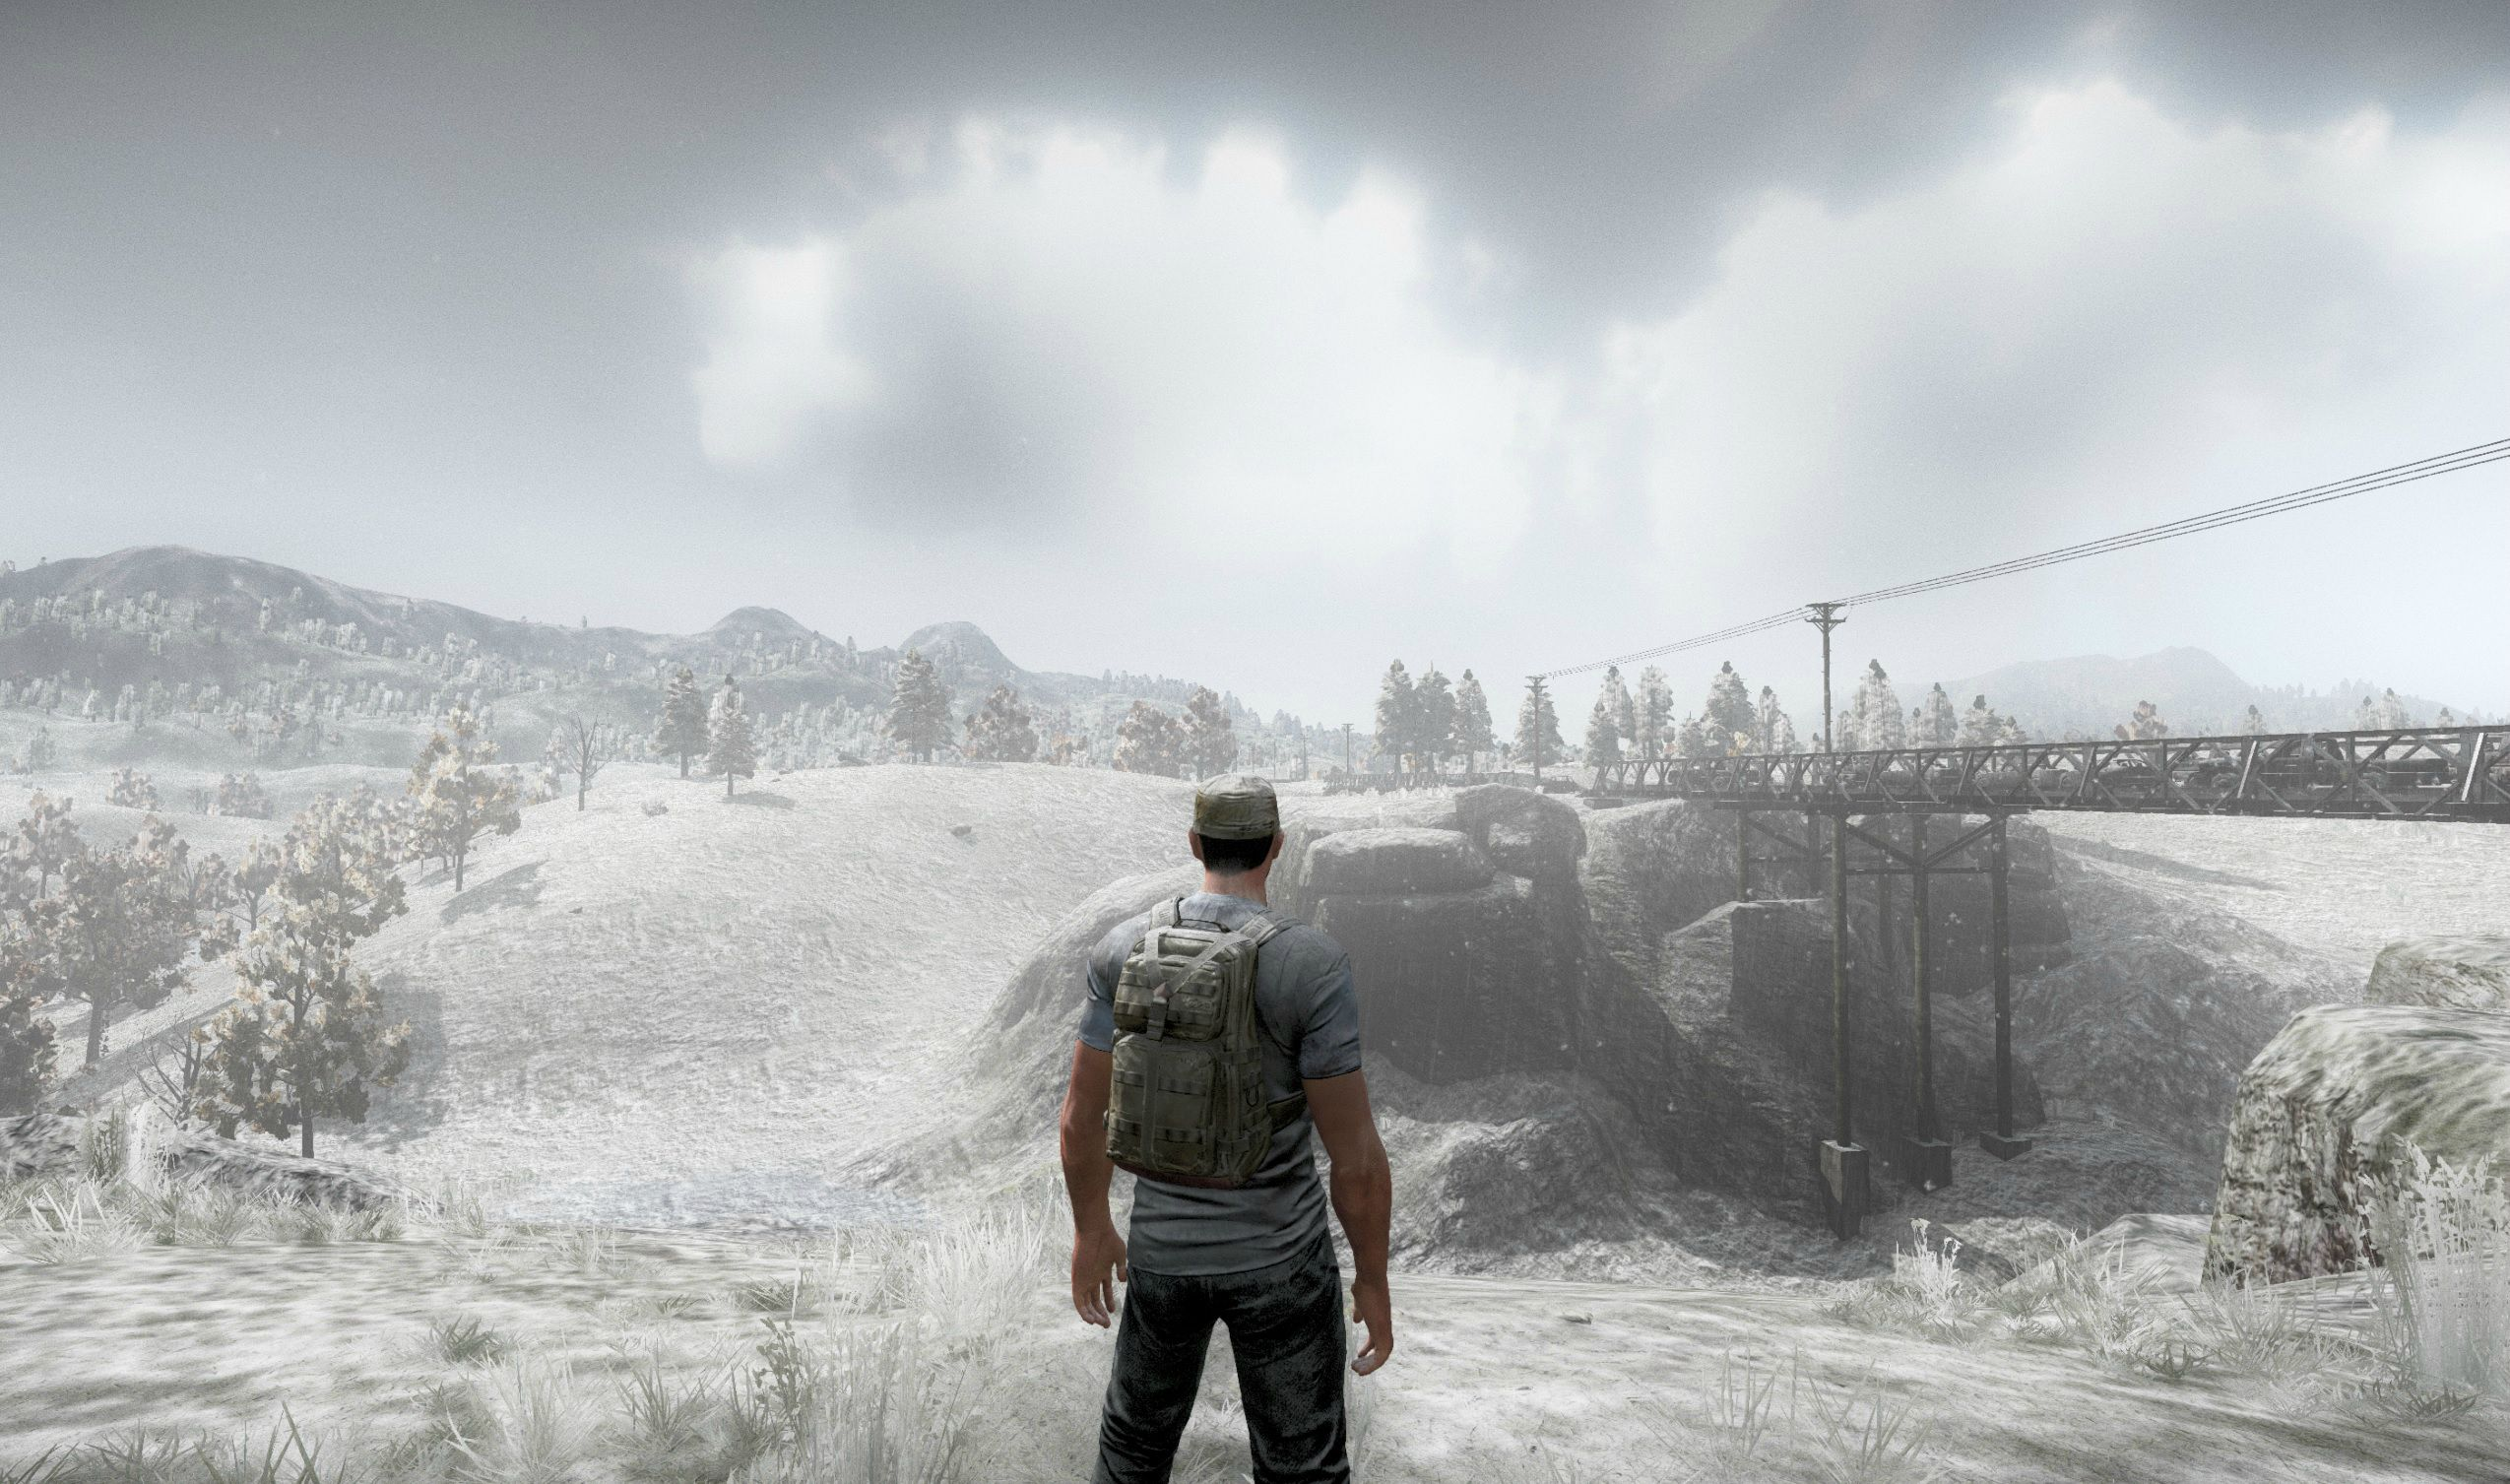 Weather changes in H1Z1 shown in new images - VG247